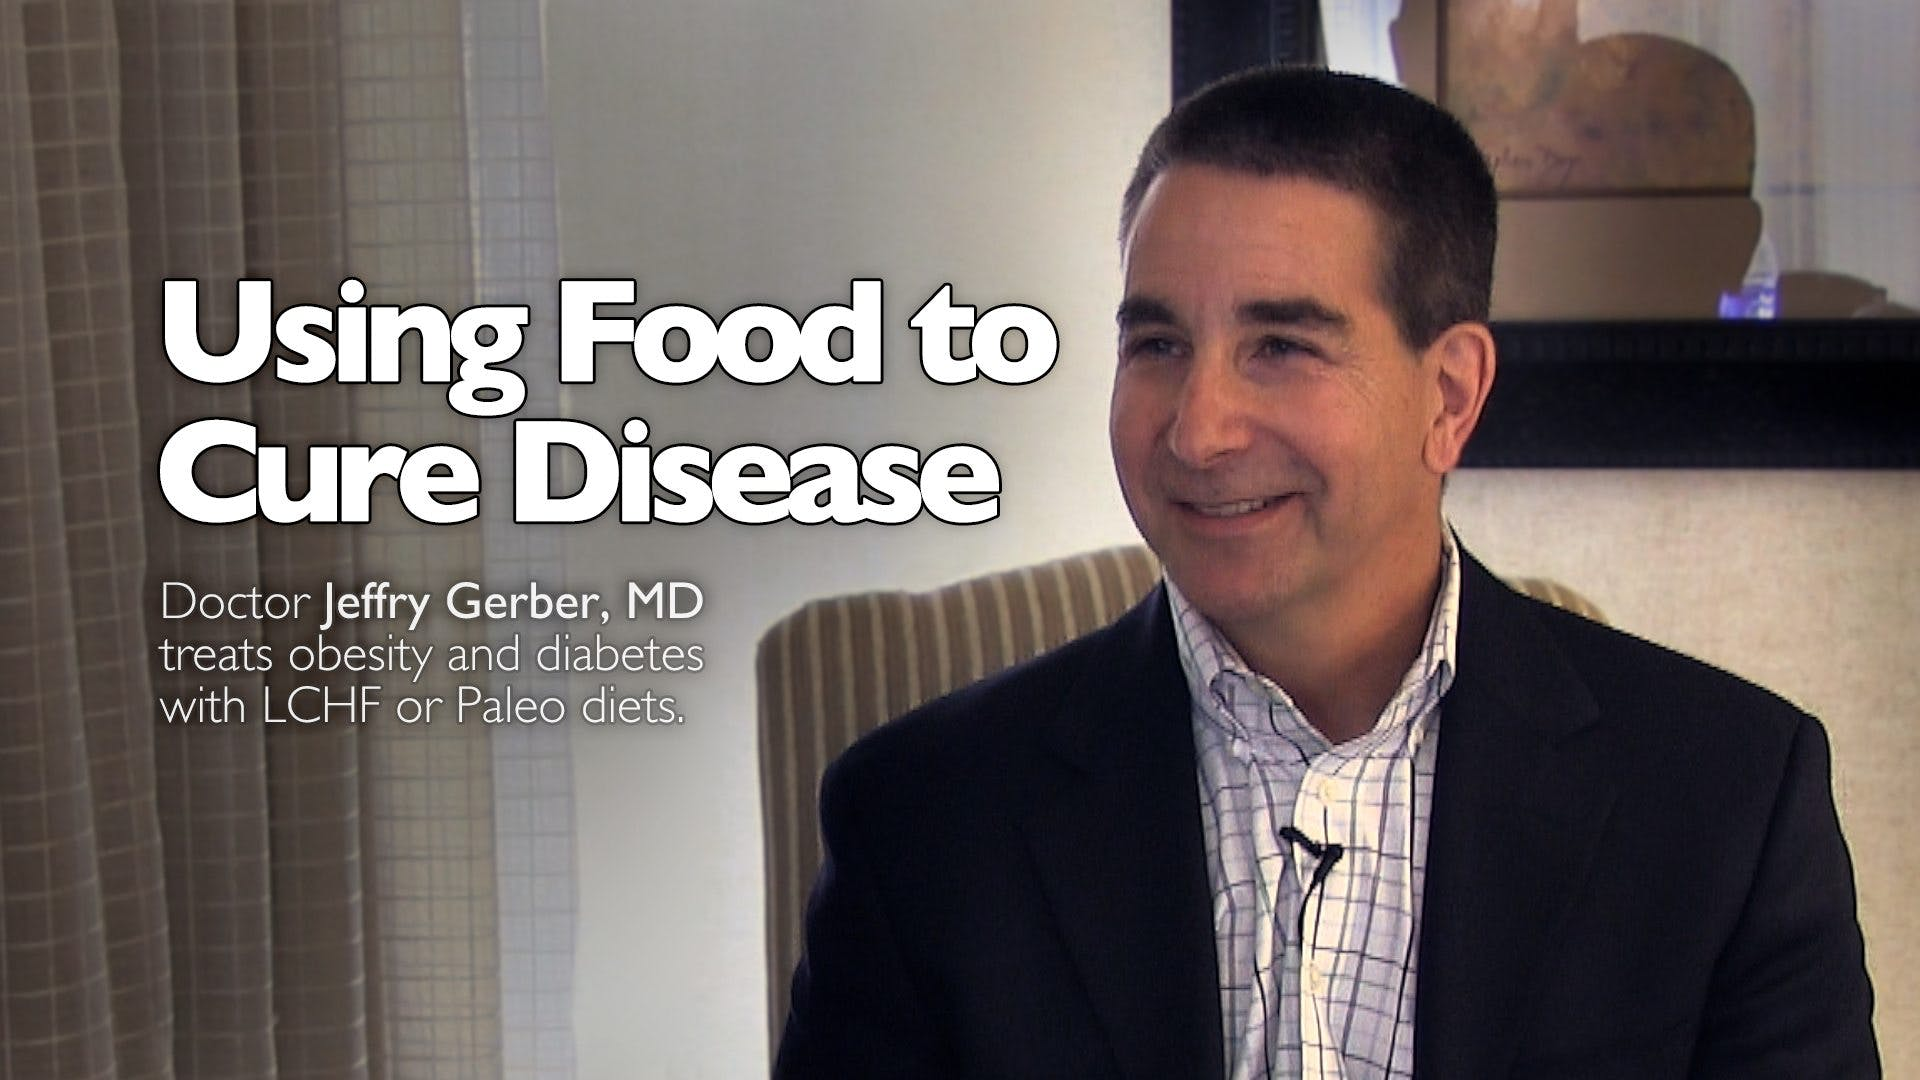 Using Food to Cure Disease – Dr. Jeffry Gerber